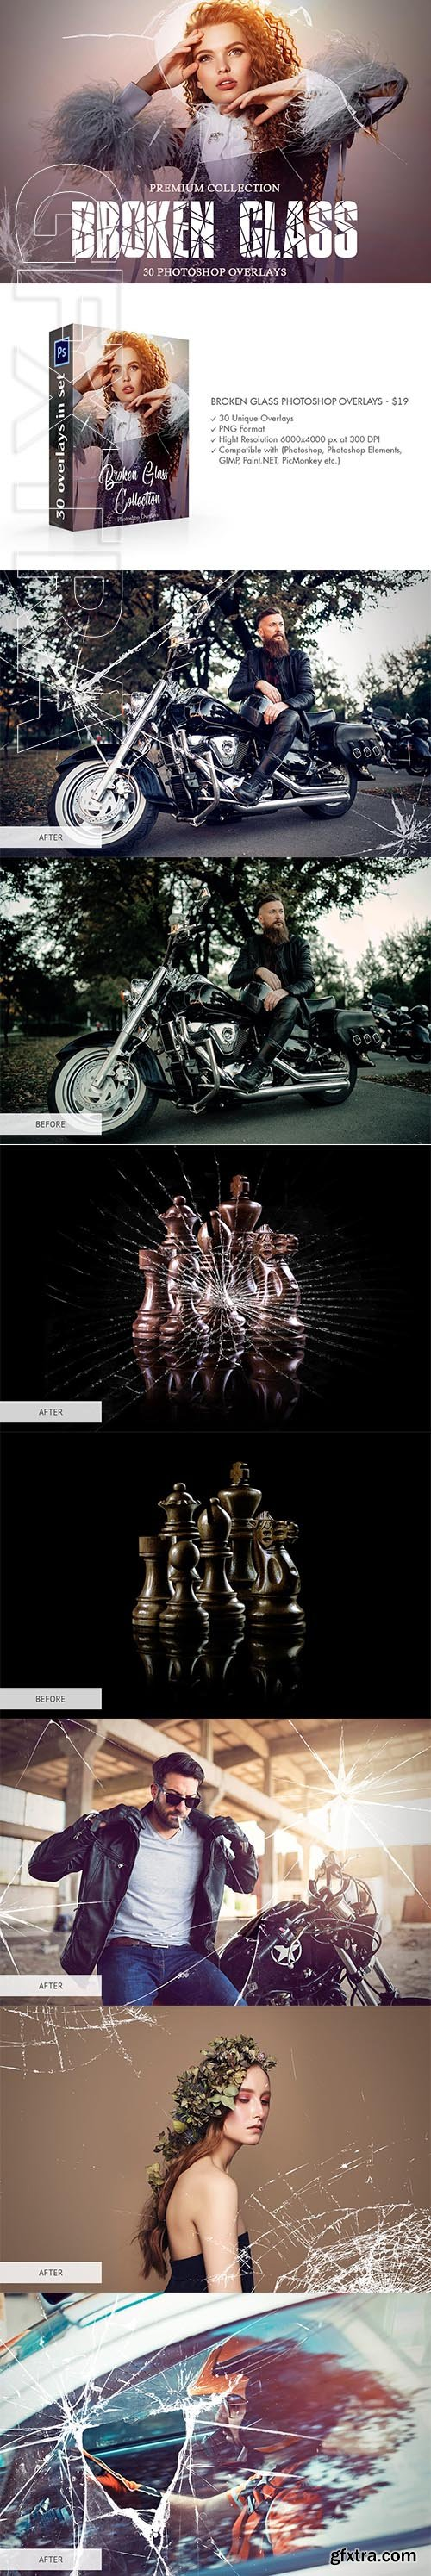 CreativeMarket - Broken Glass Photoshop Overlays 4147752